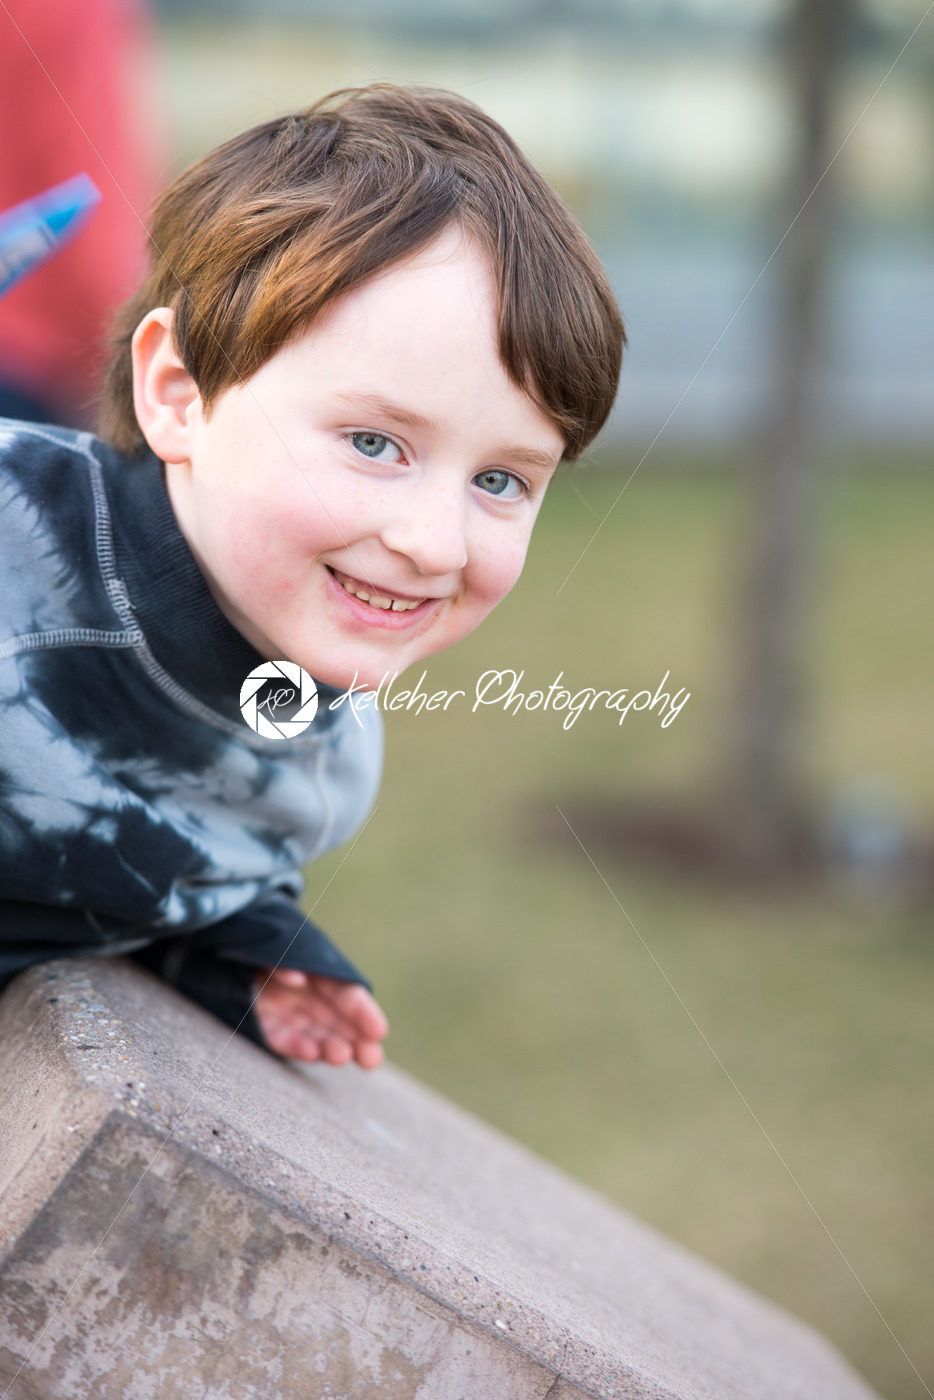 Young boy leaning over looking and smiling - Kelleher Photography Store